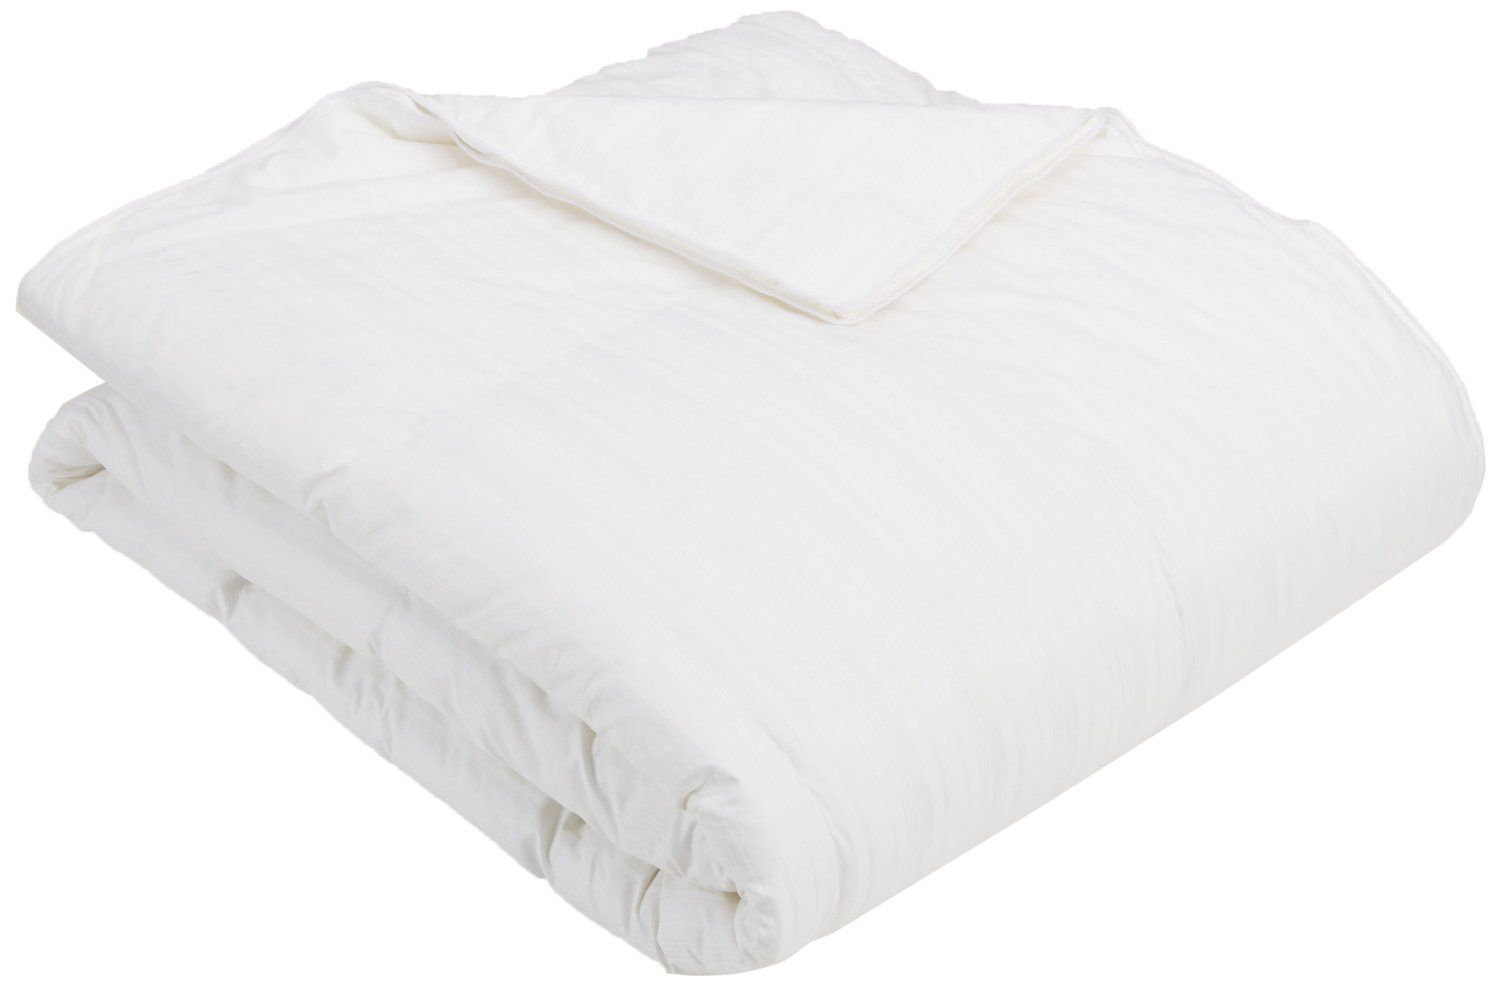 Pinzon Hypoallergenic Medium Warmth Down Alternative Comforter - Full/Queen